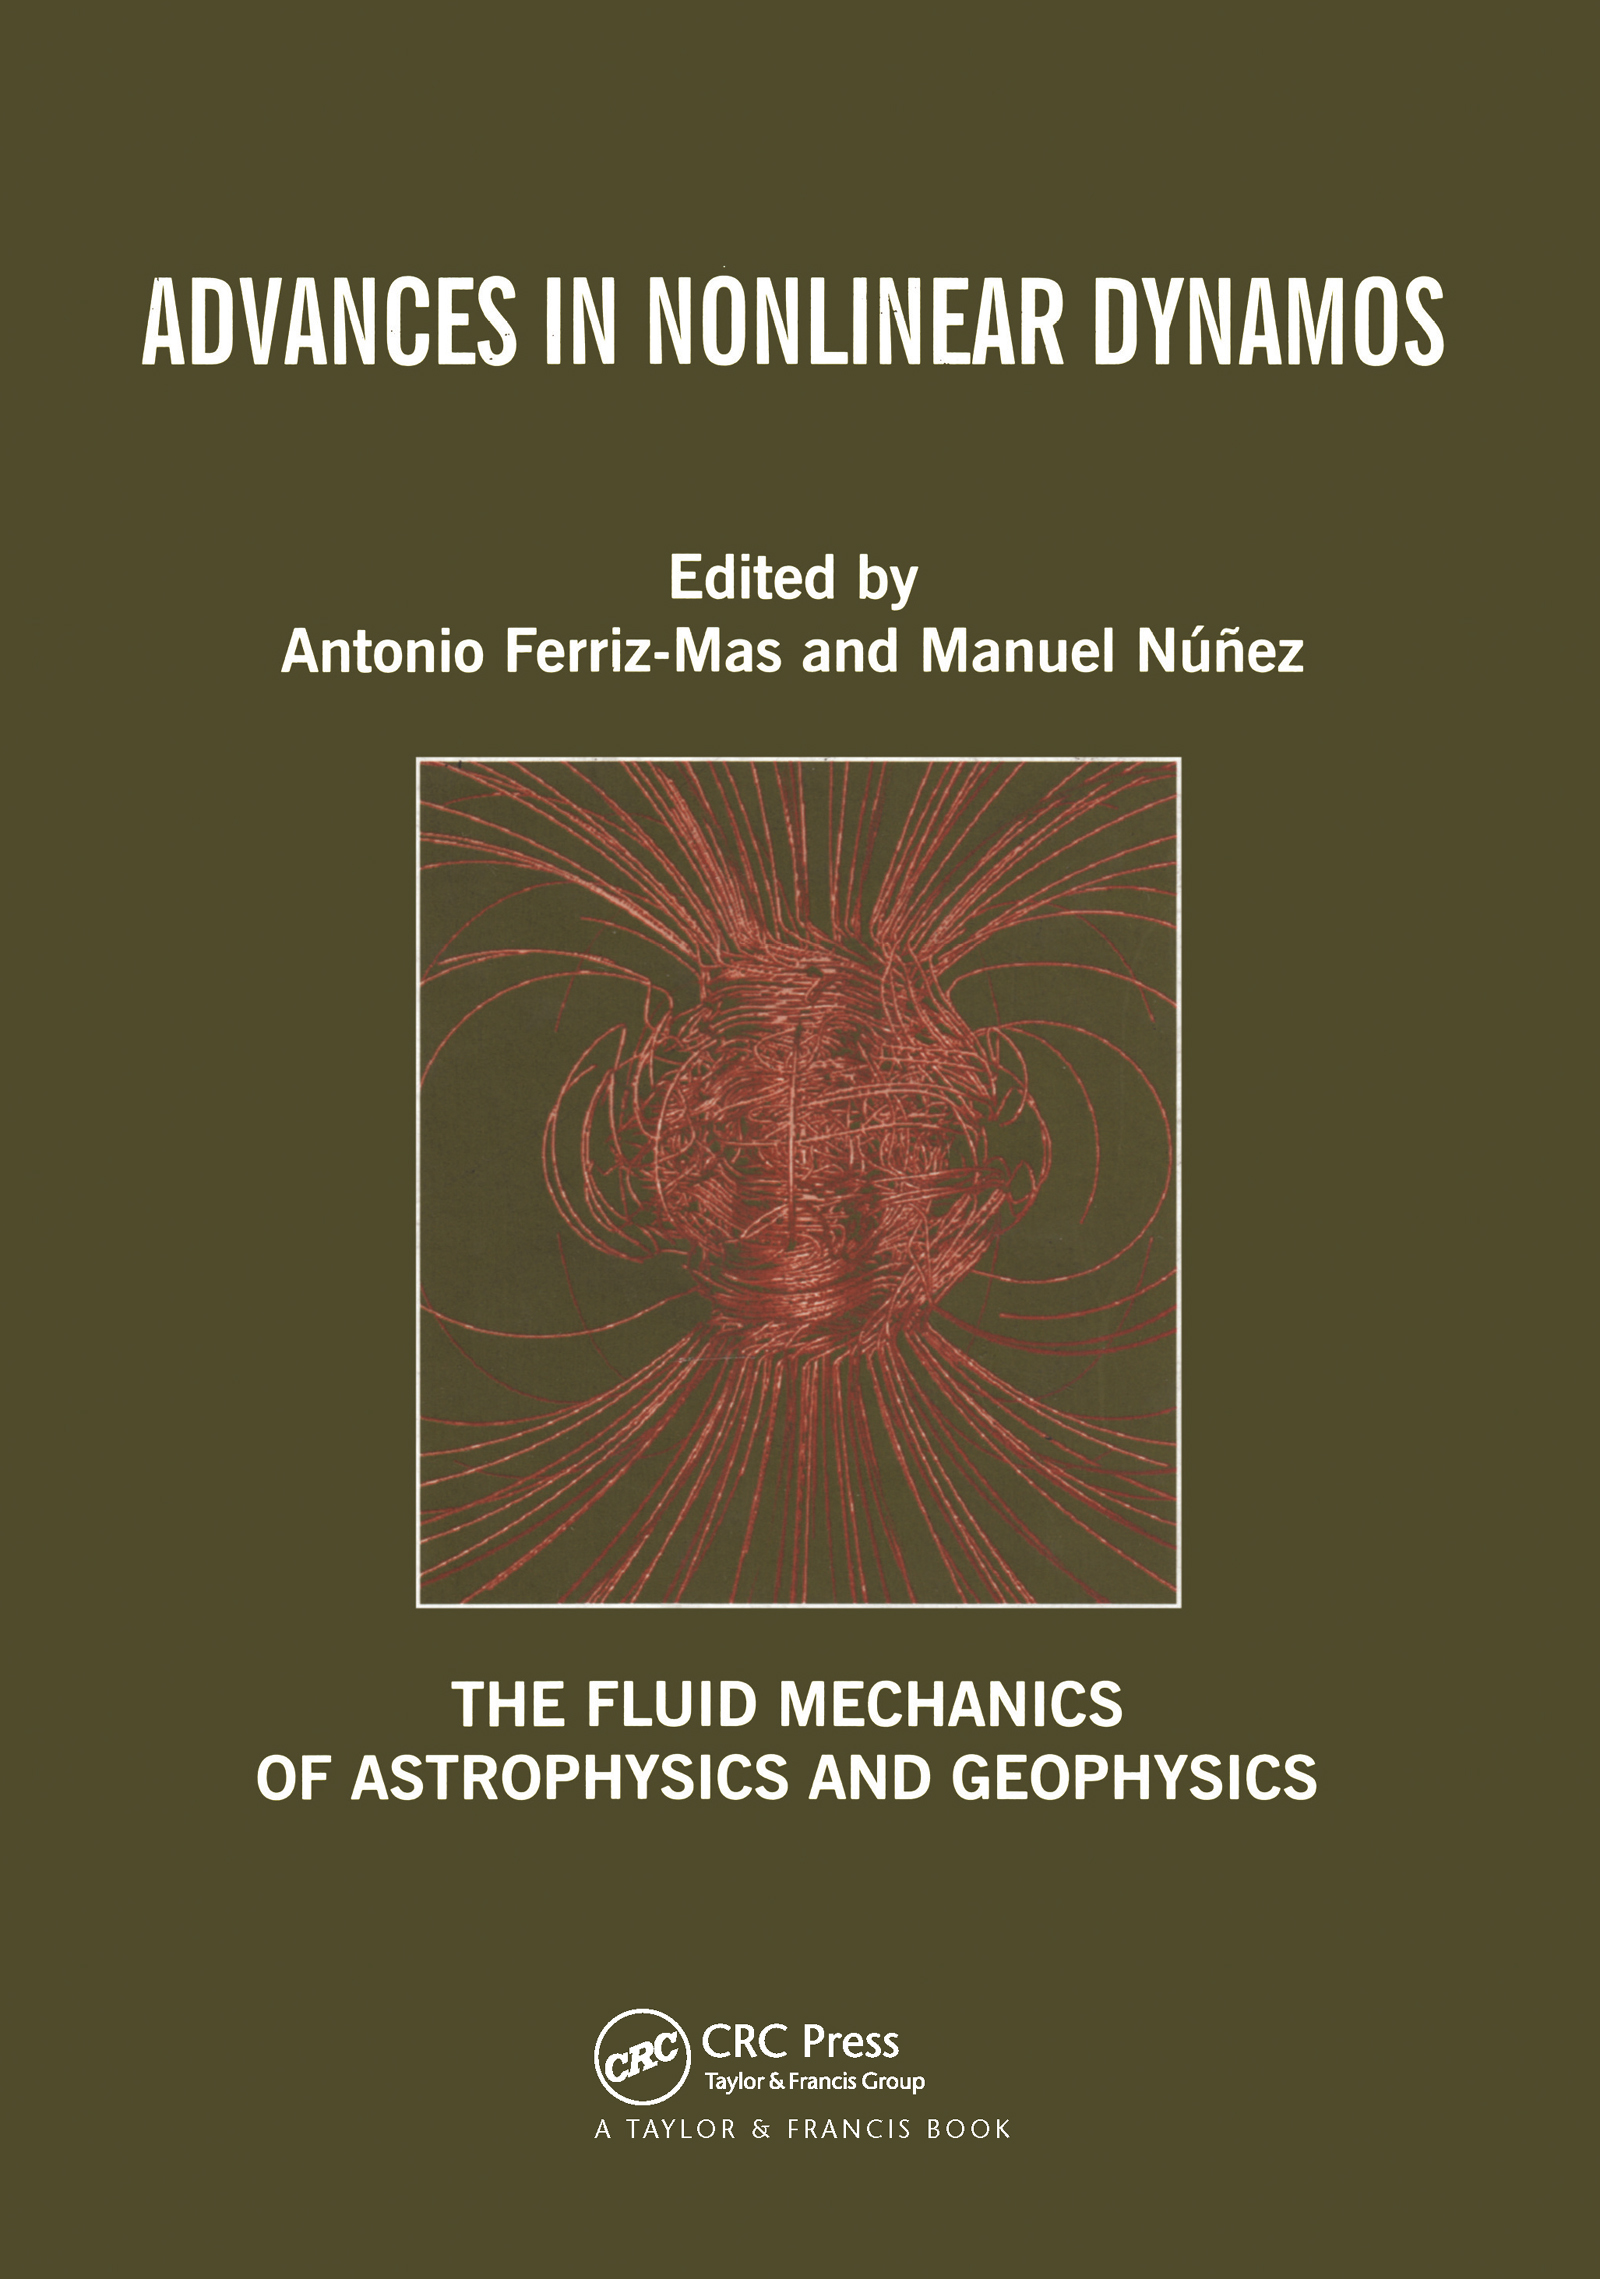 Advances in Nonlinear Dynamos